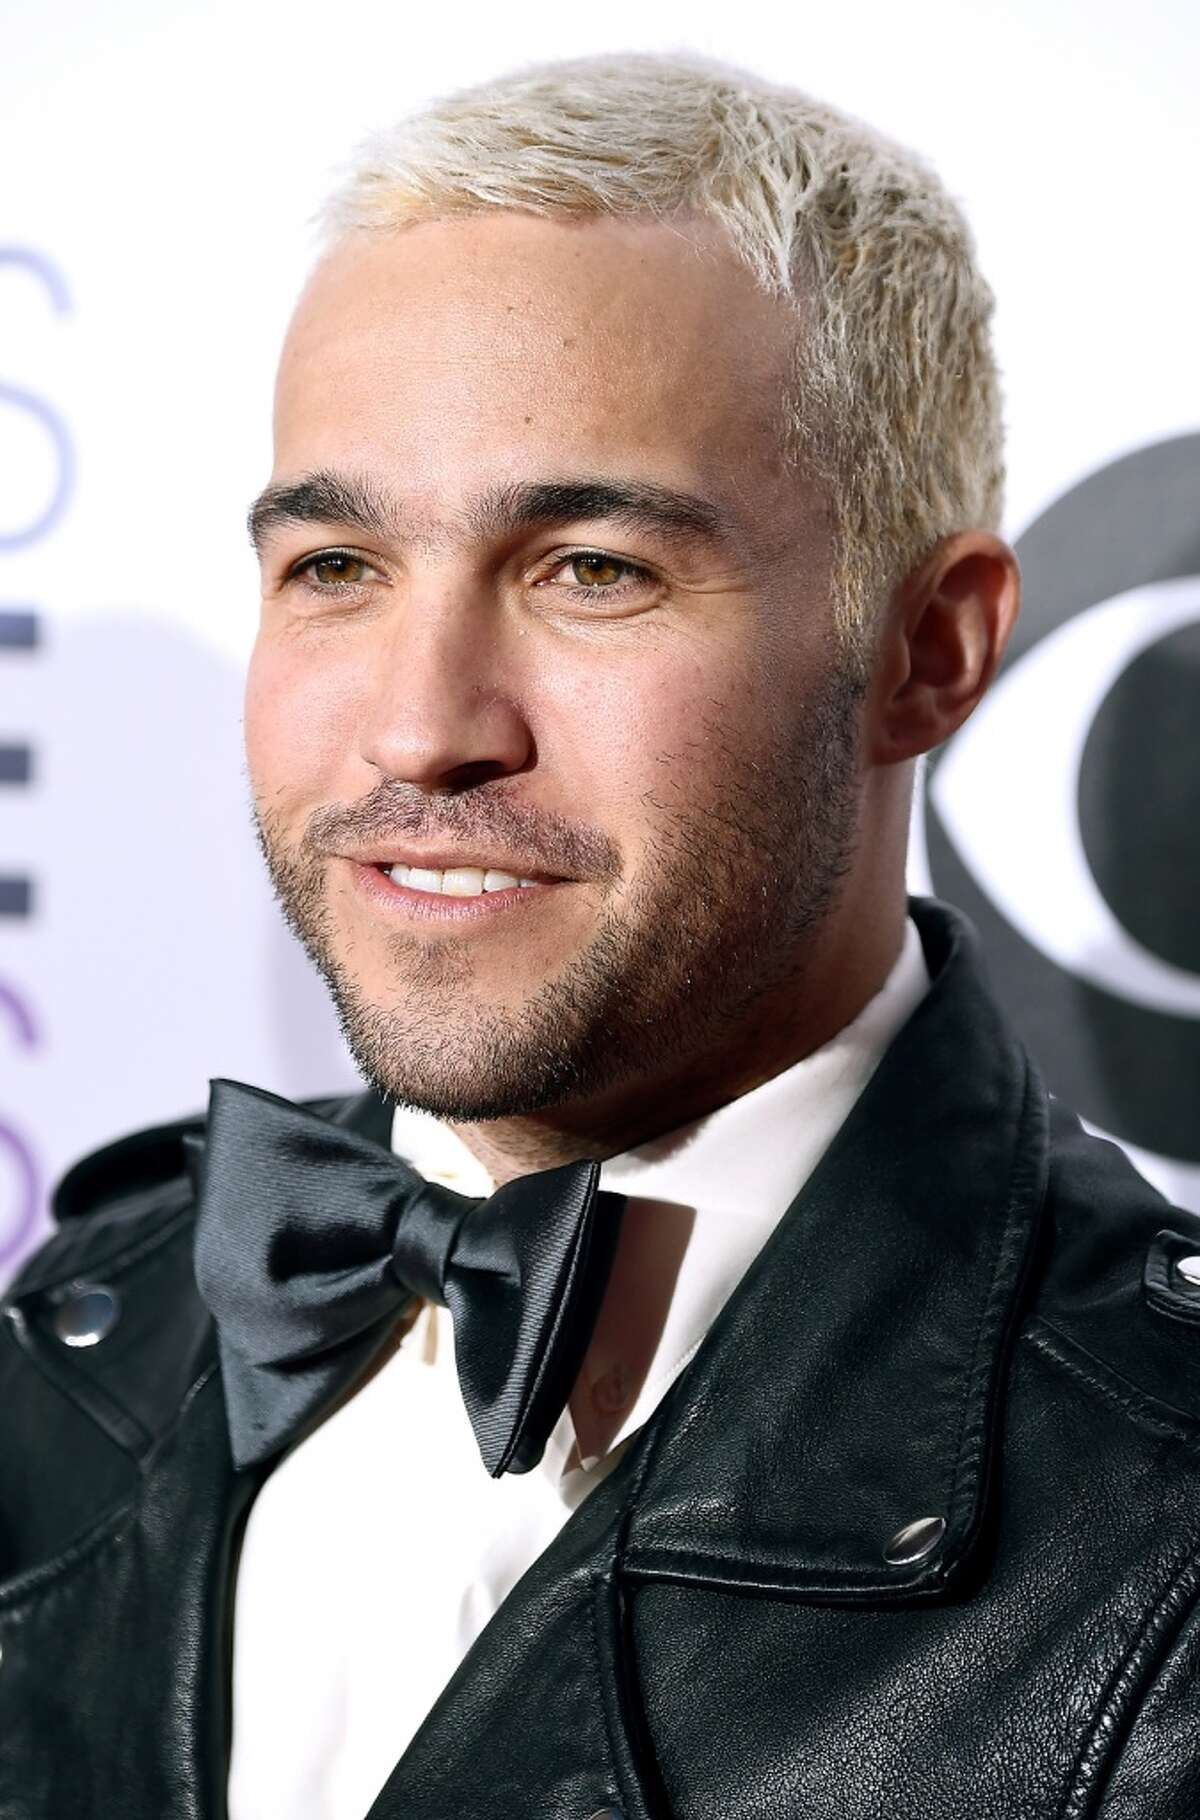 Singer Pete Wentz of Fall Out Boy fame is of Afro-Jamaican decent on his mother's side.